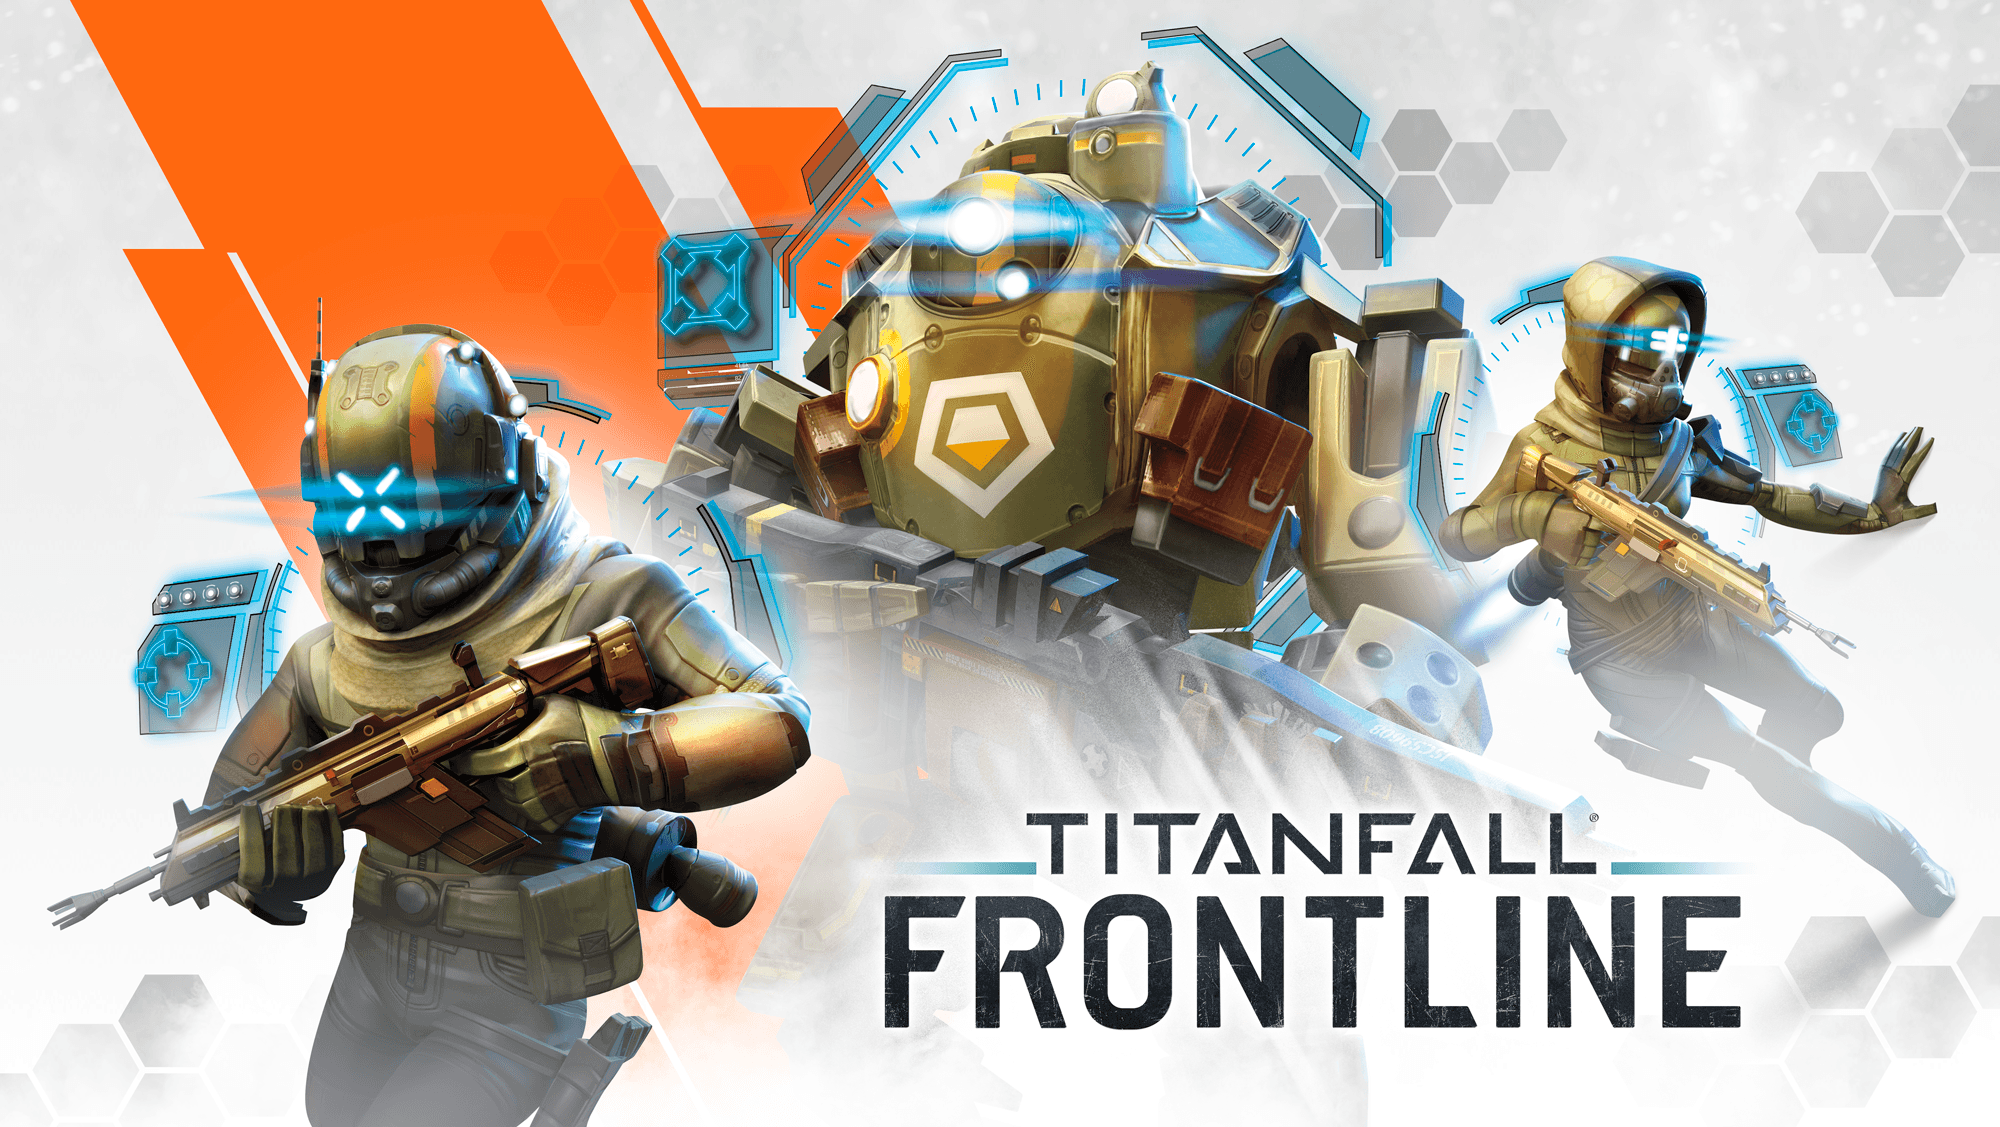 Titanfall Coming To Mobile Devices